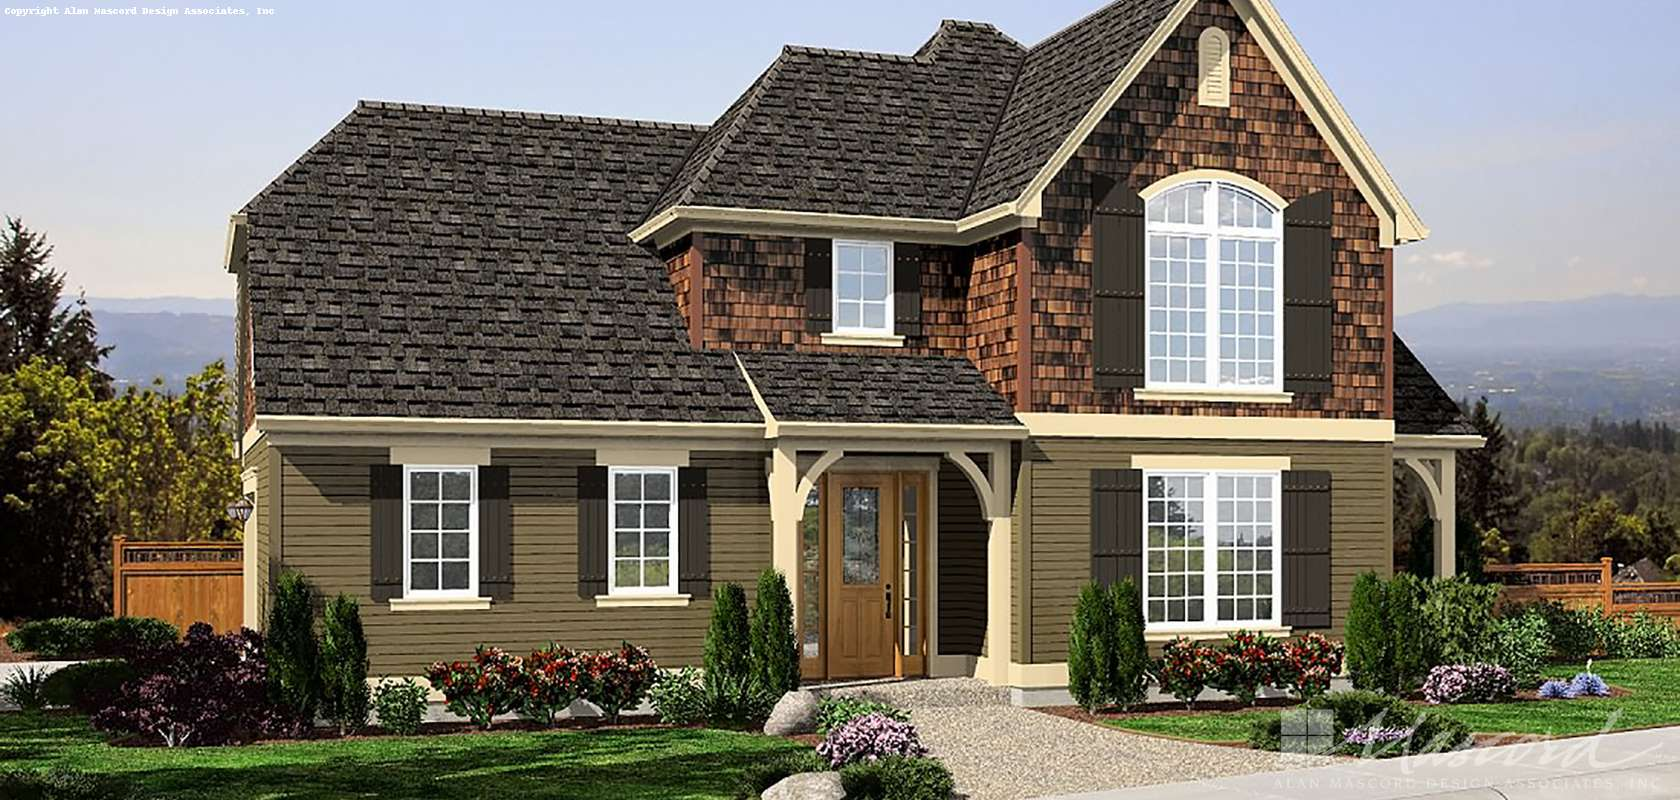 Mascord House Plan 2102AE: The Gutenberg